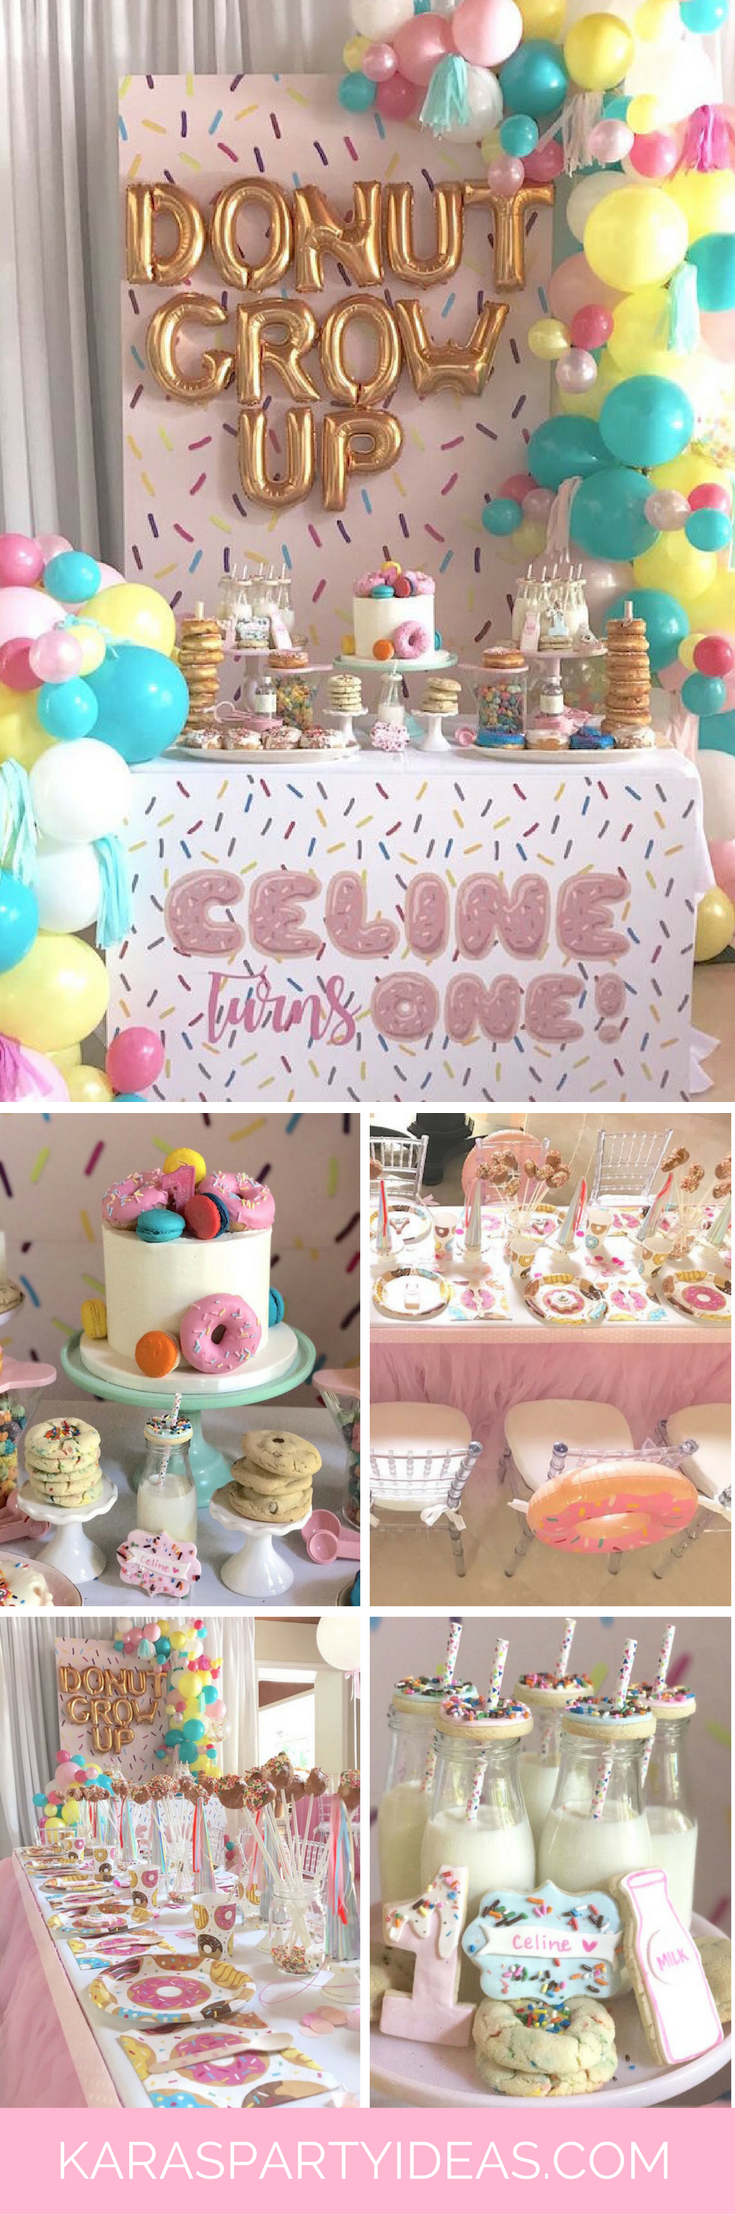 "Kara's Party Ideas ""Donut"" Grow Up 1st Birthday Party ..."